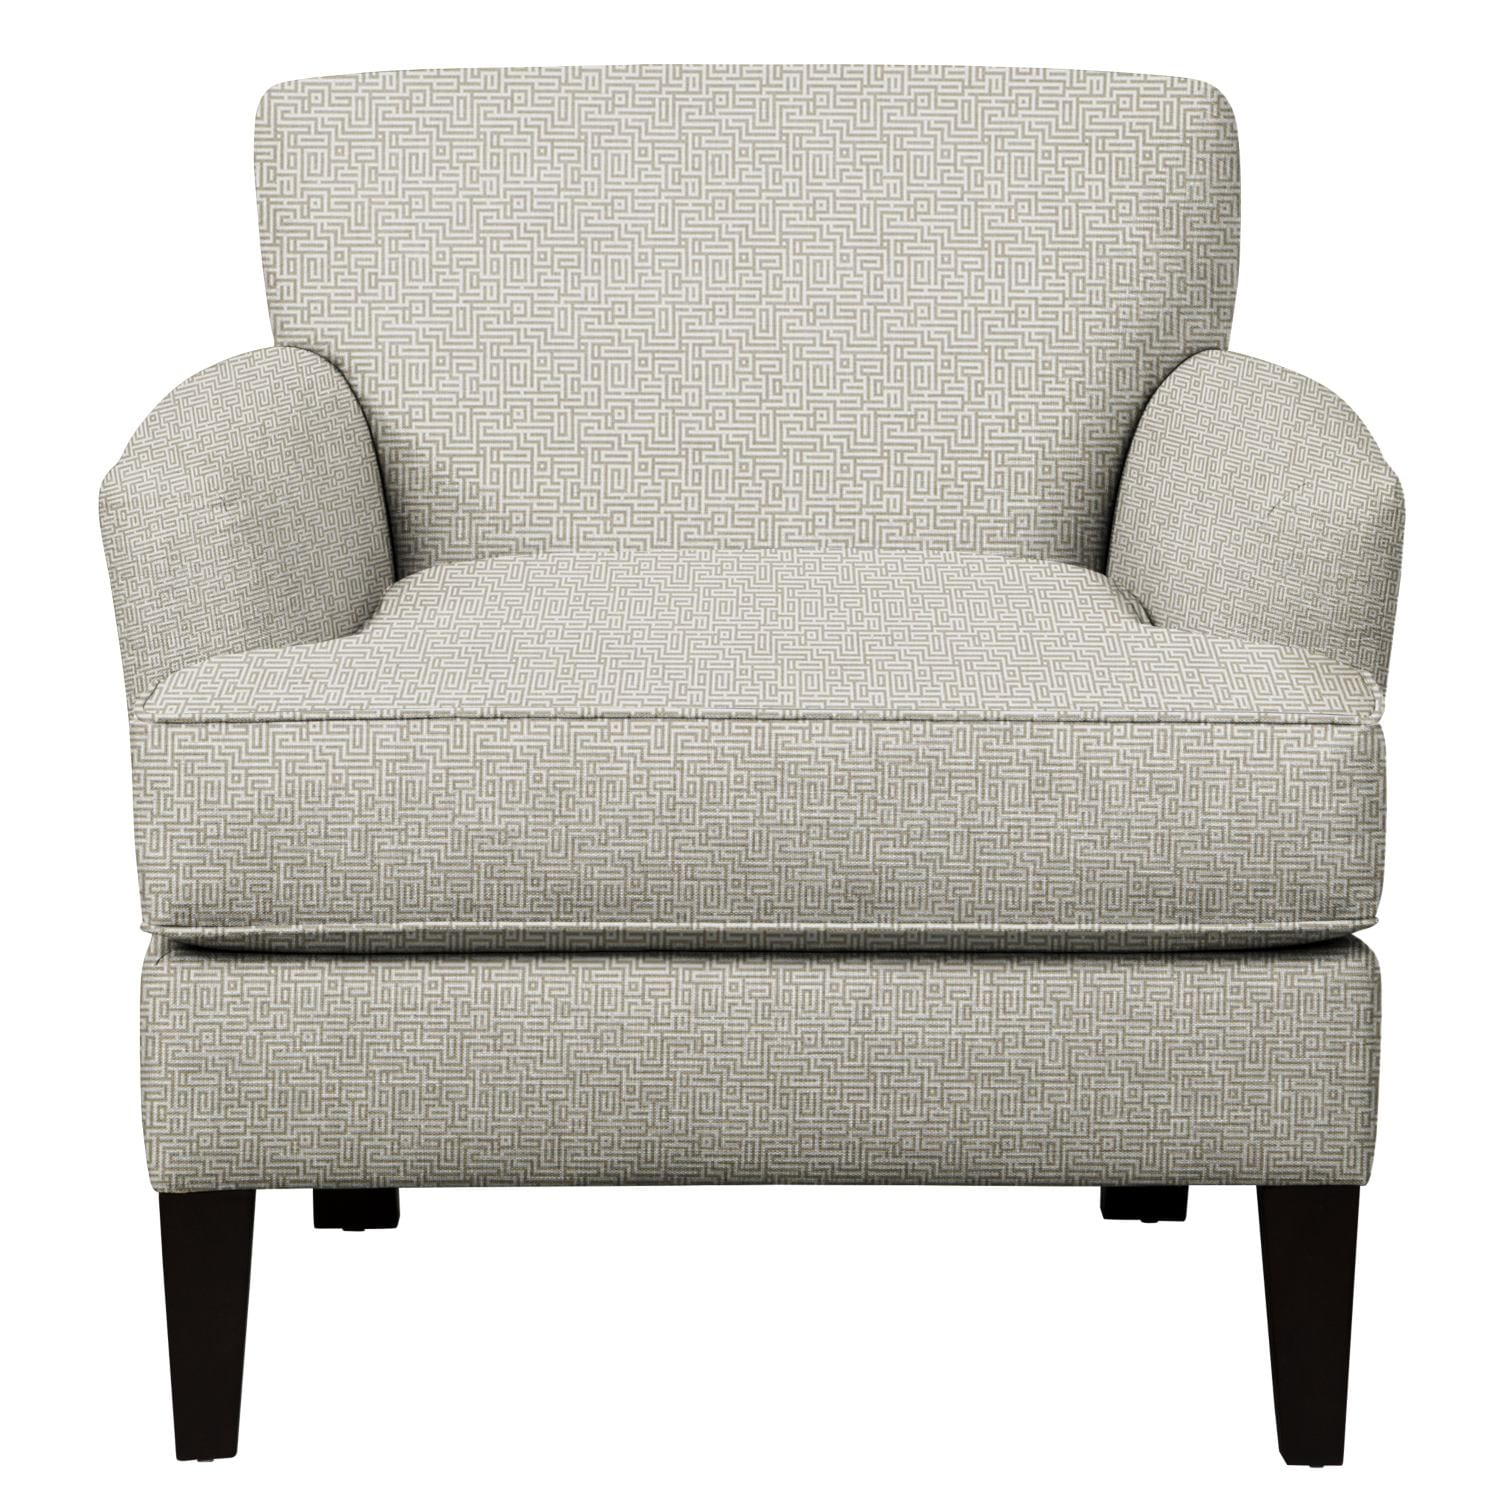 Living Room Furniture - Marcus Chair w/ Interlochen Slate Fabric